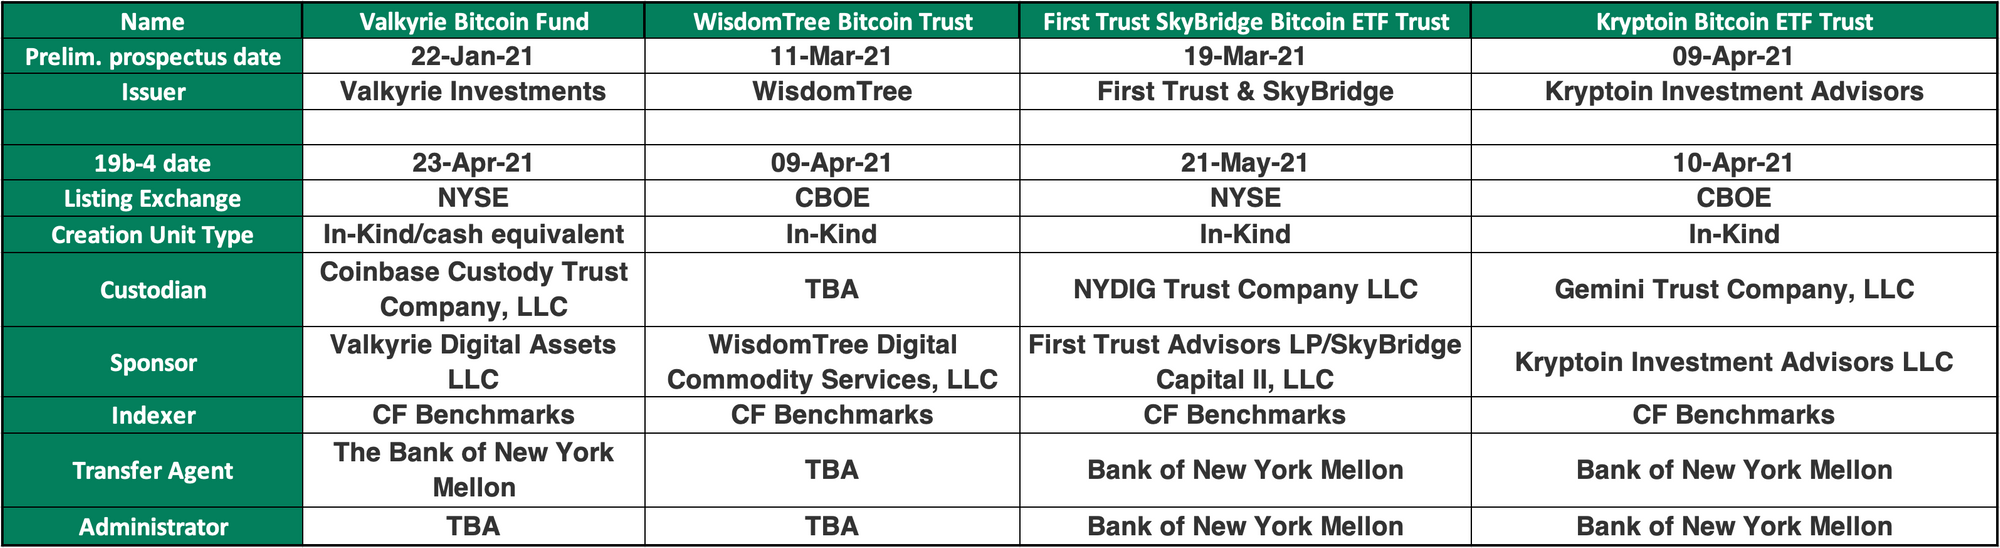 CF-Benchmarks-supported-US-Bitcoin-ETF-applications---28-05-2021-2